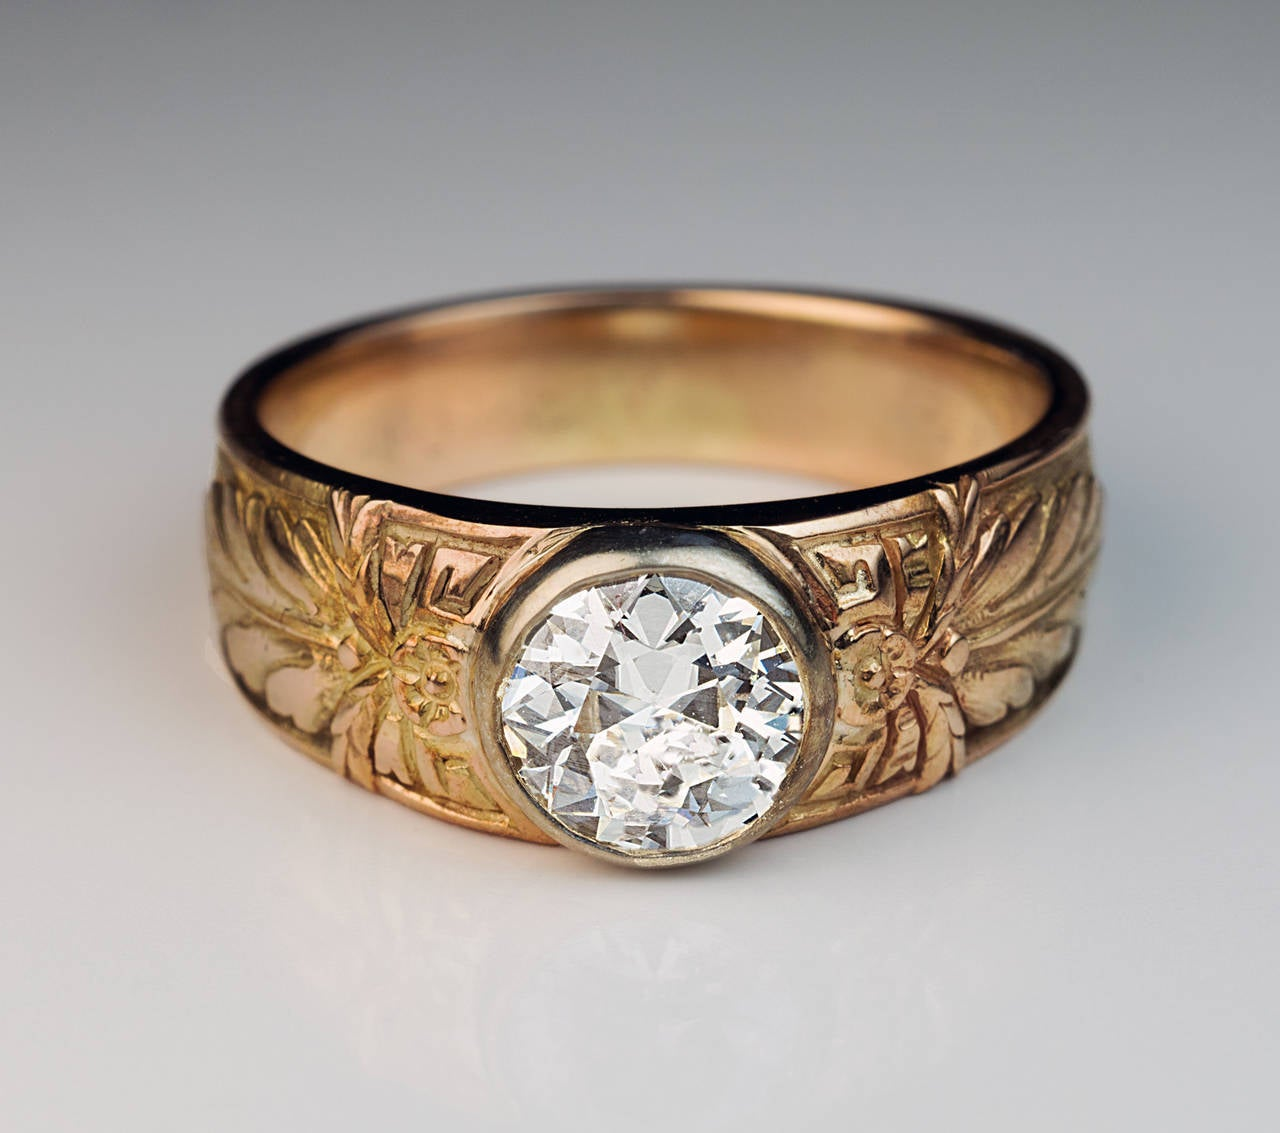 Antique Russian 1 Carat Diamond Gold Men's Ring For Sale 3